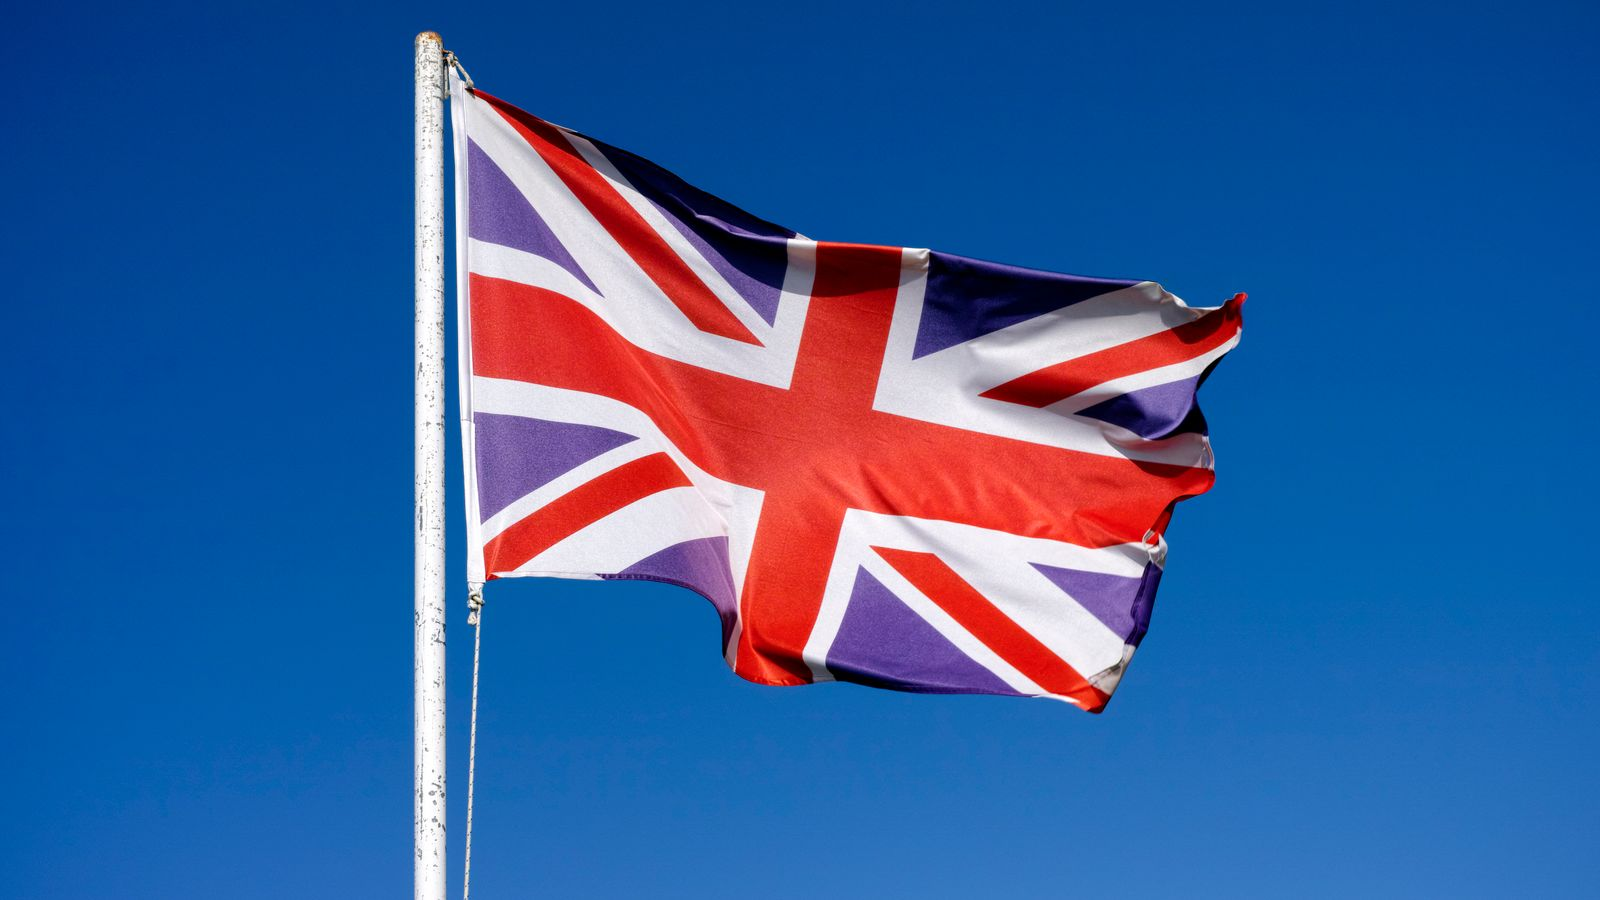 Union flag set to be flown on all UK government buildings every day